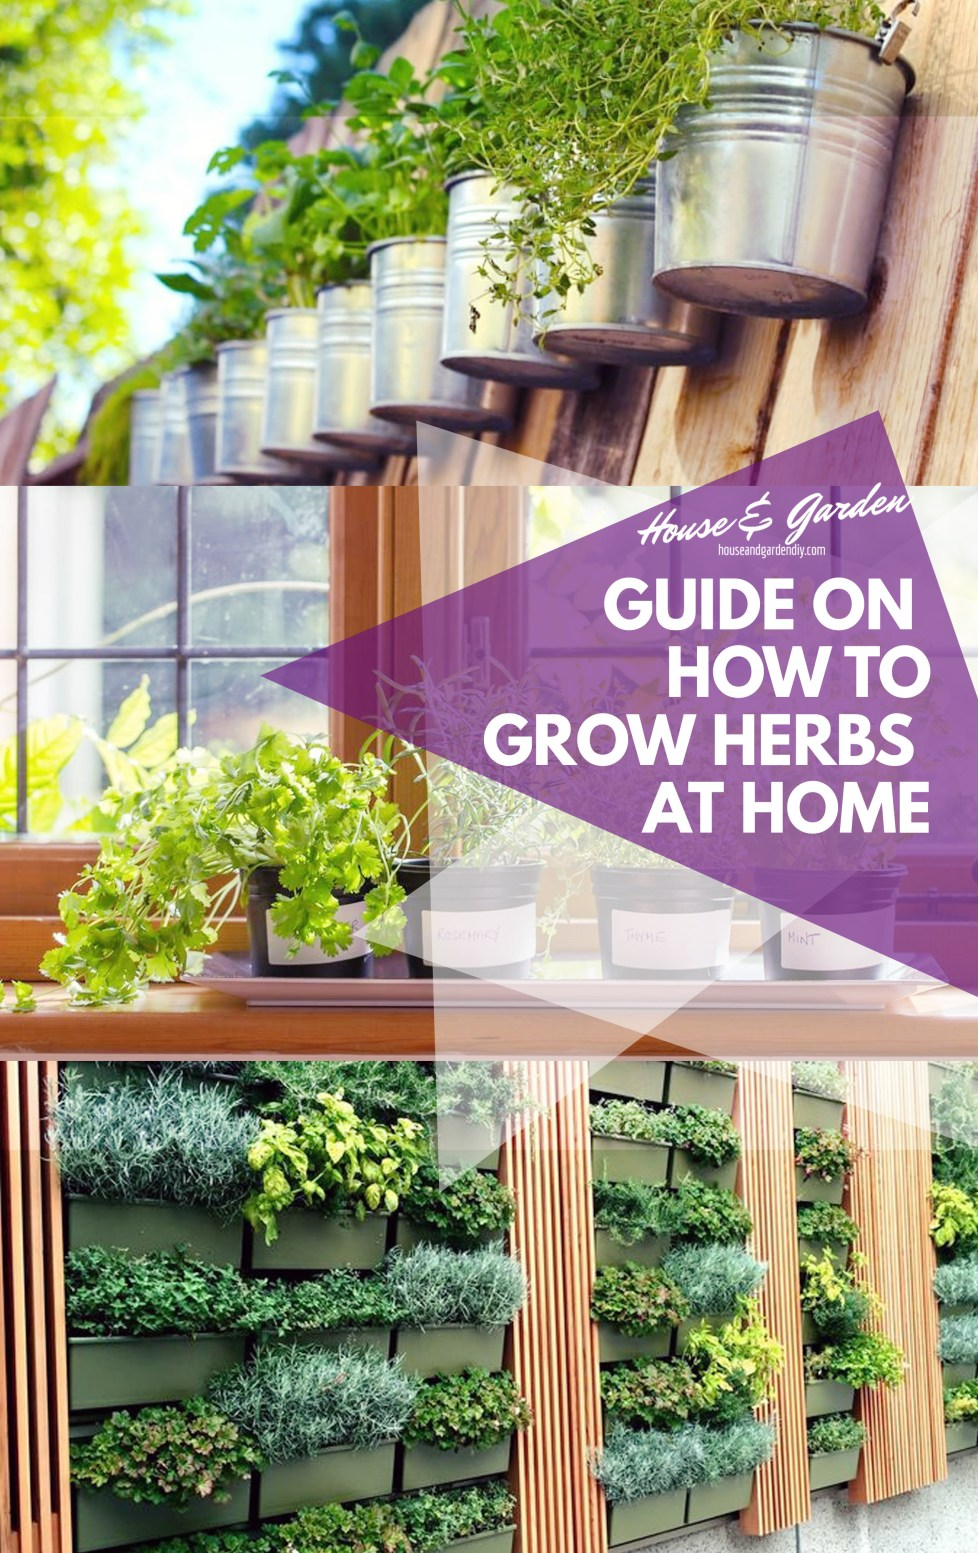 Guide on How to Grow Herbs at Home